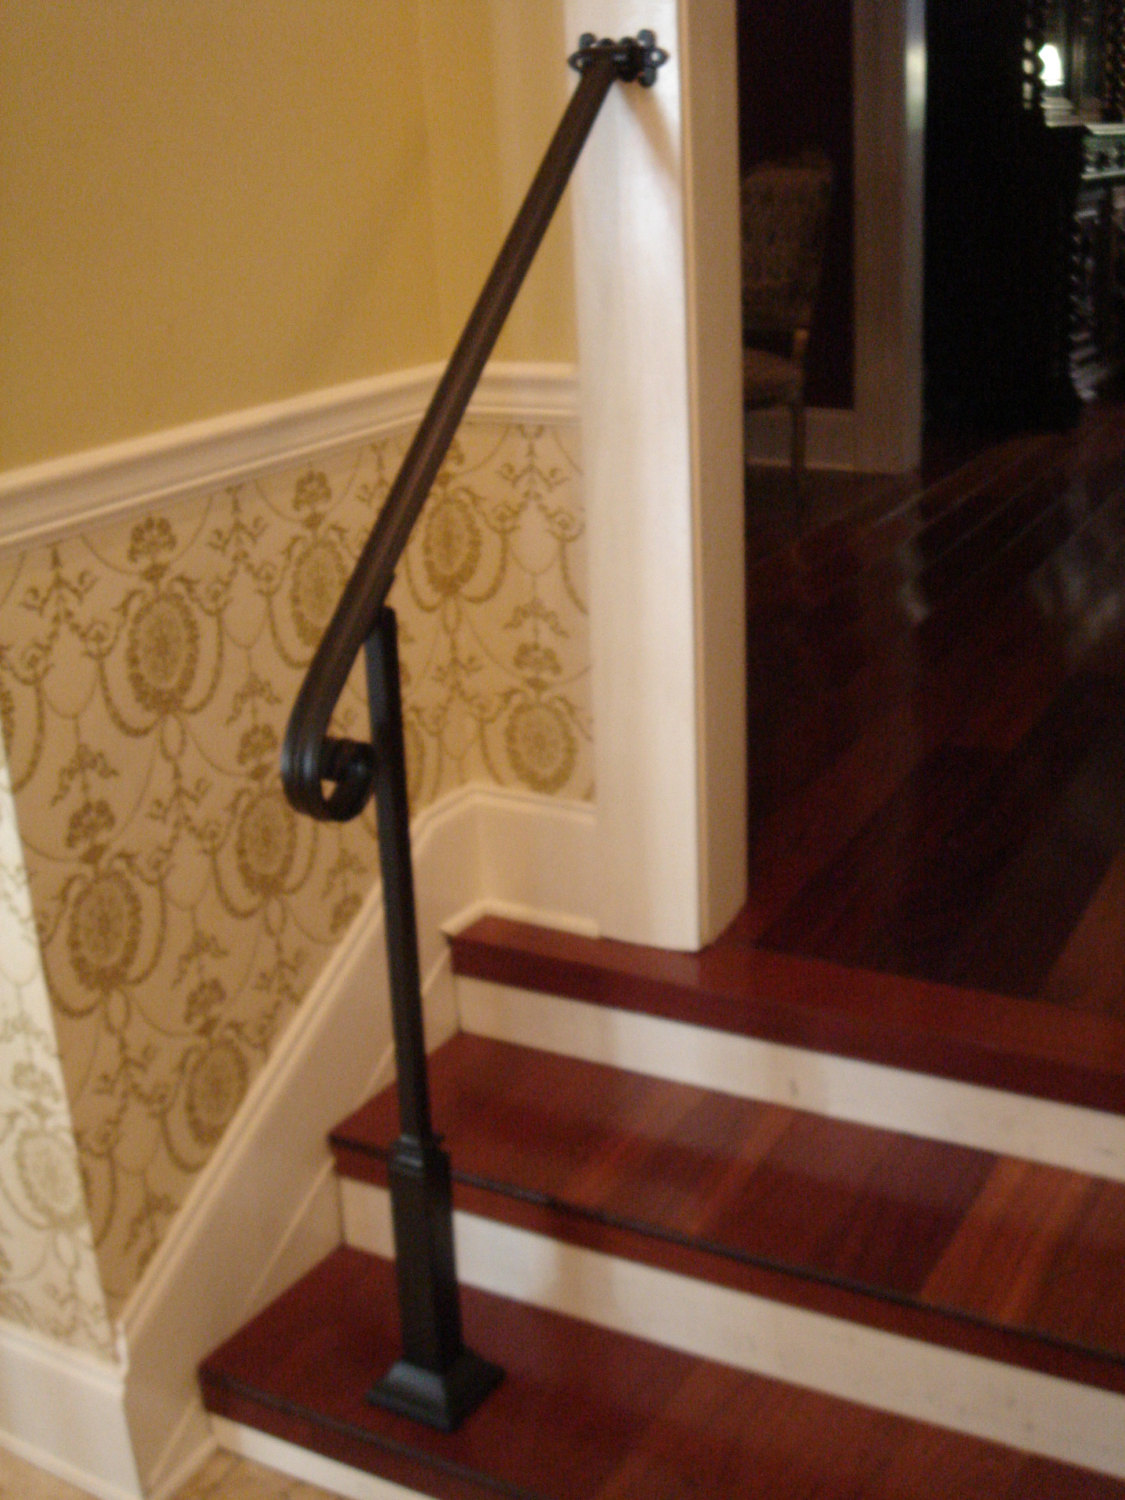 3 Ft Wrought Iron Stair Hand Rail Wall/Post Mount Bracket ...